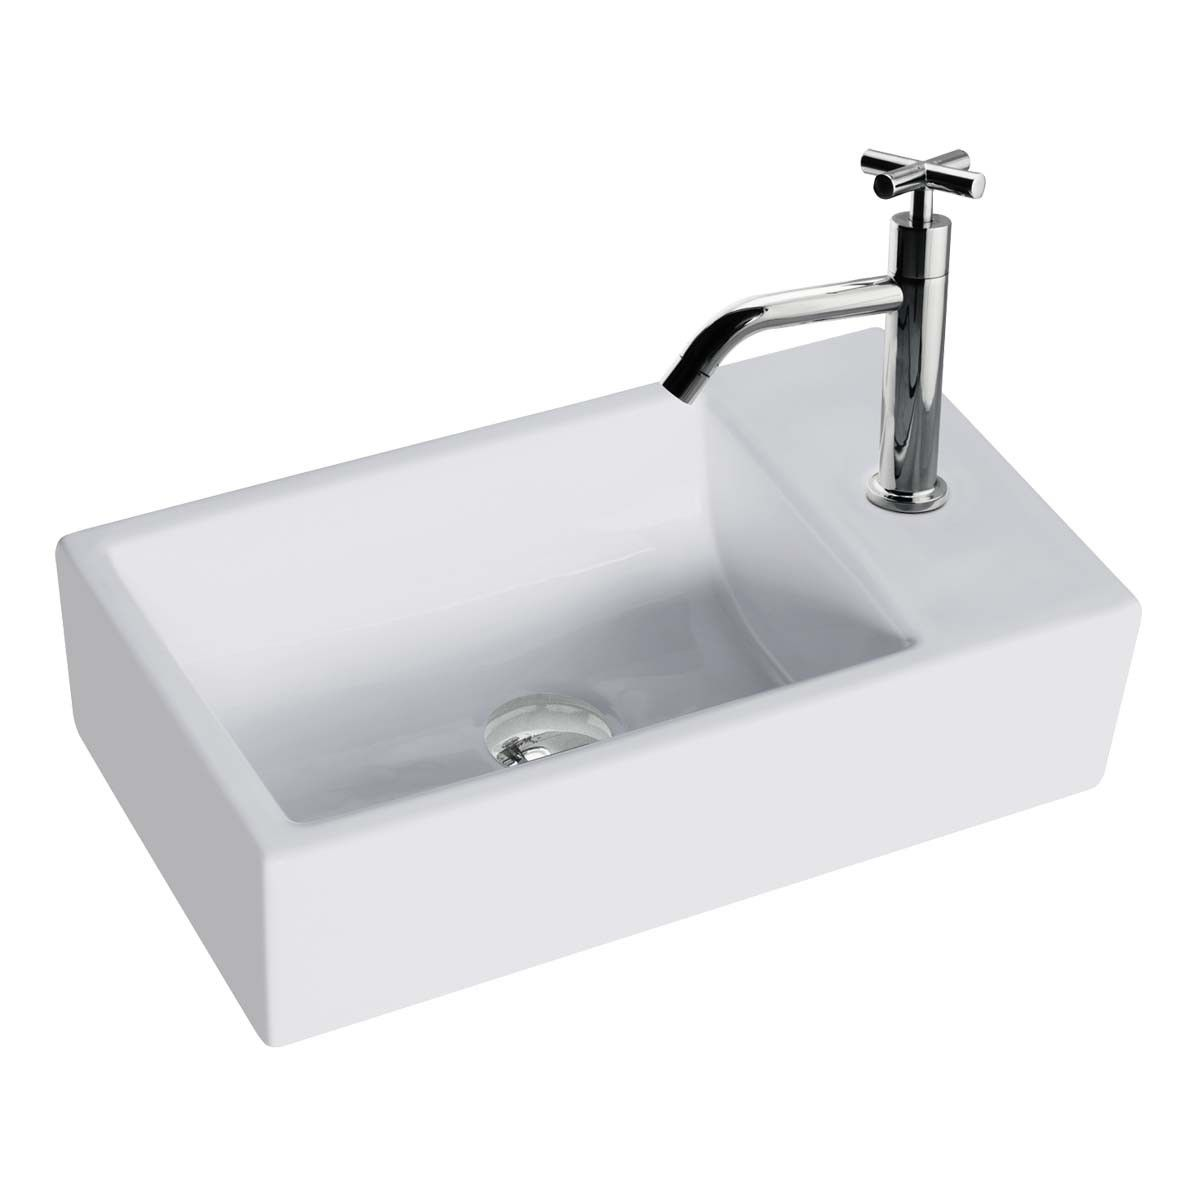 Small Rectangular Bathroom Sink Item 21941 Small Rectangular Above Counter Sink Bathroom Reno